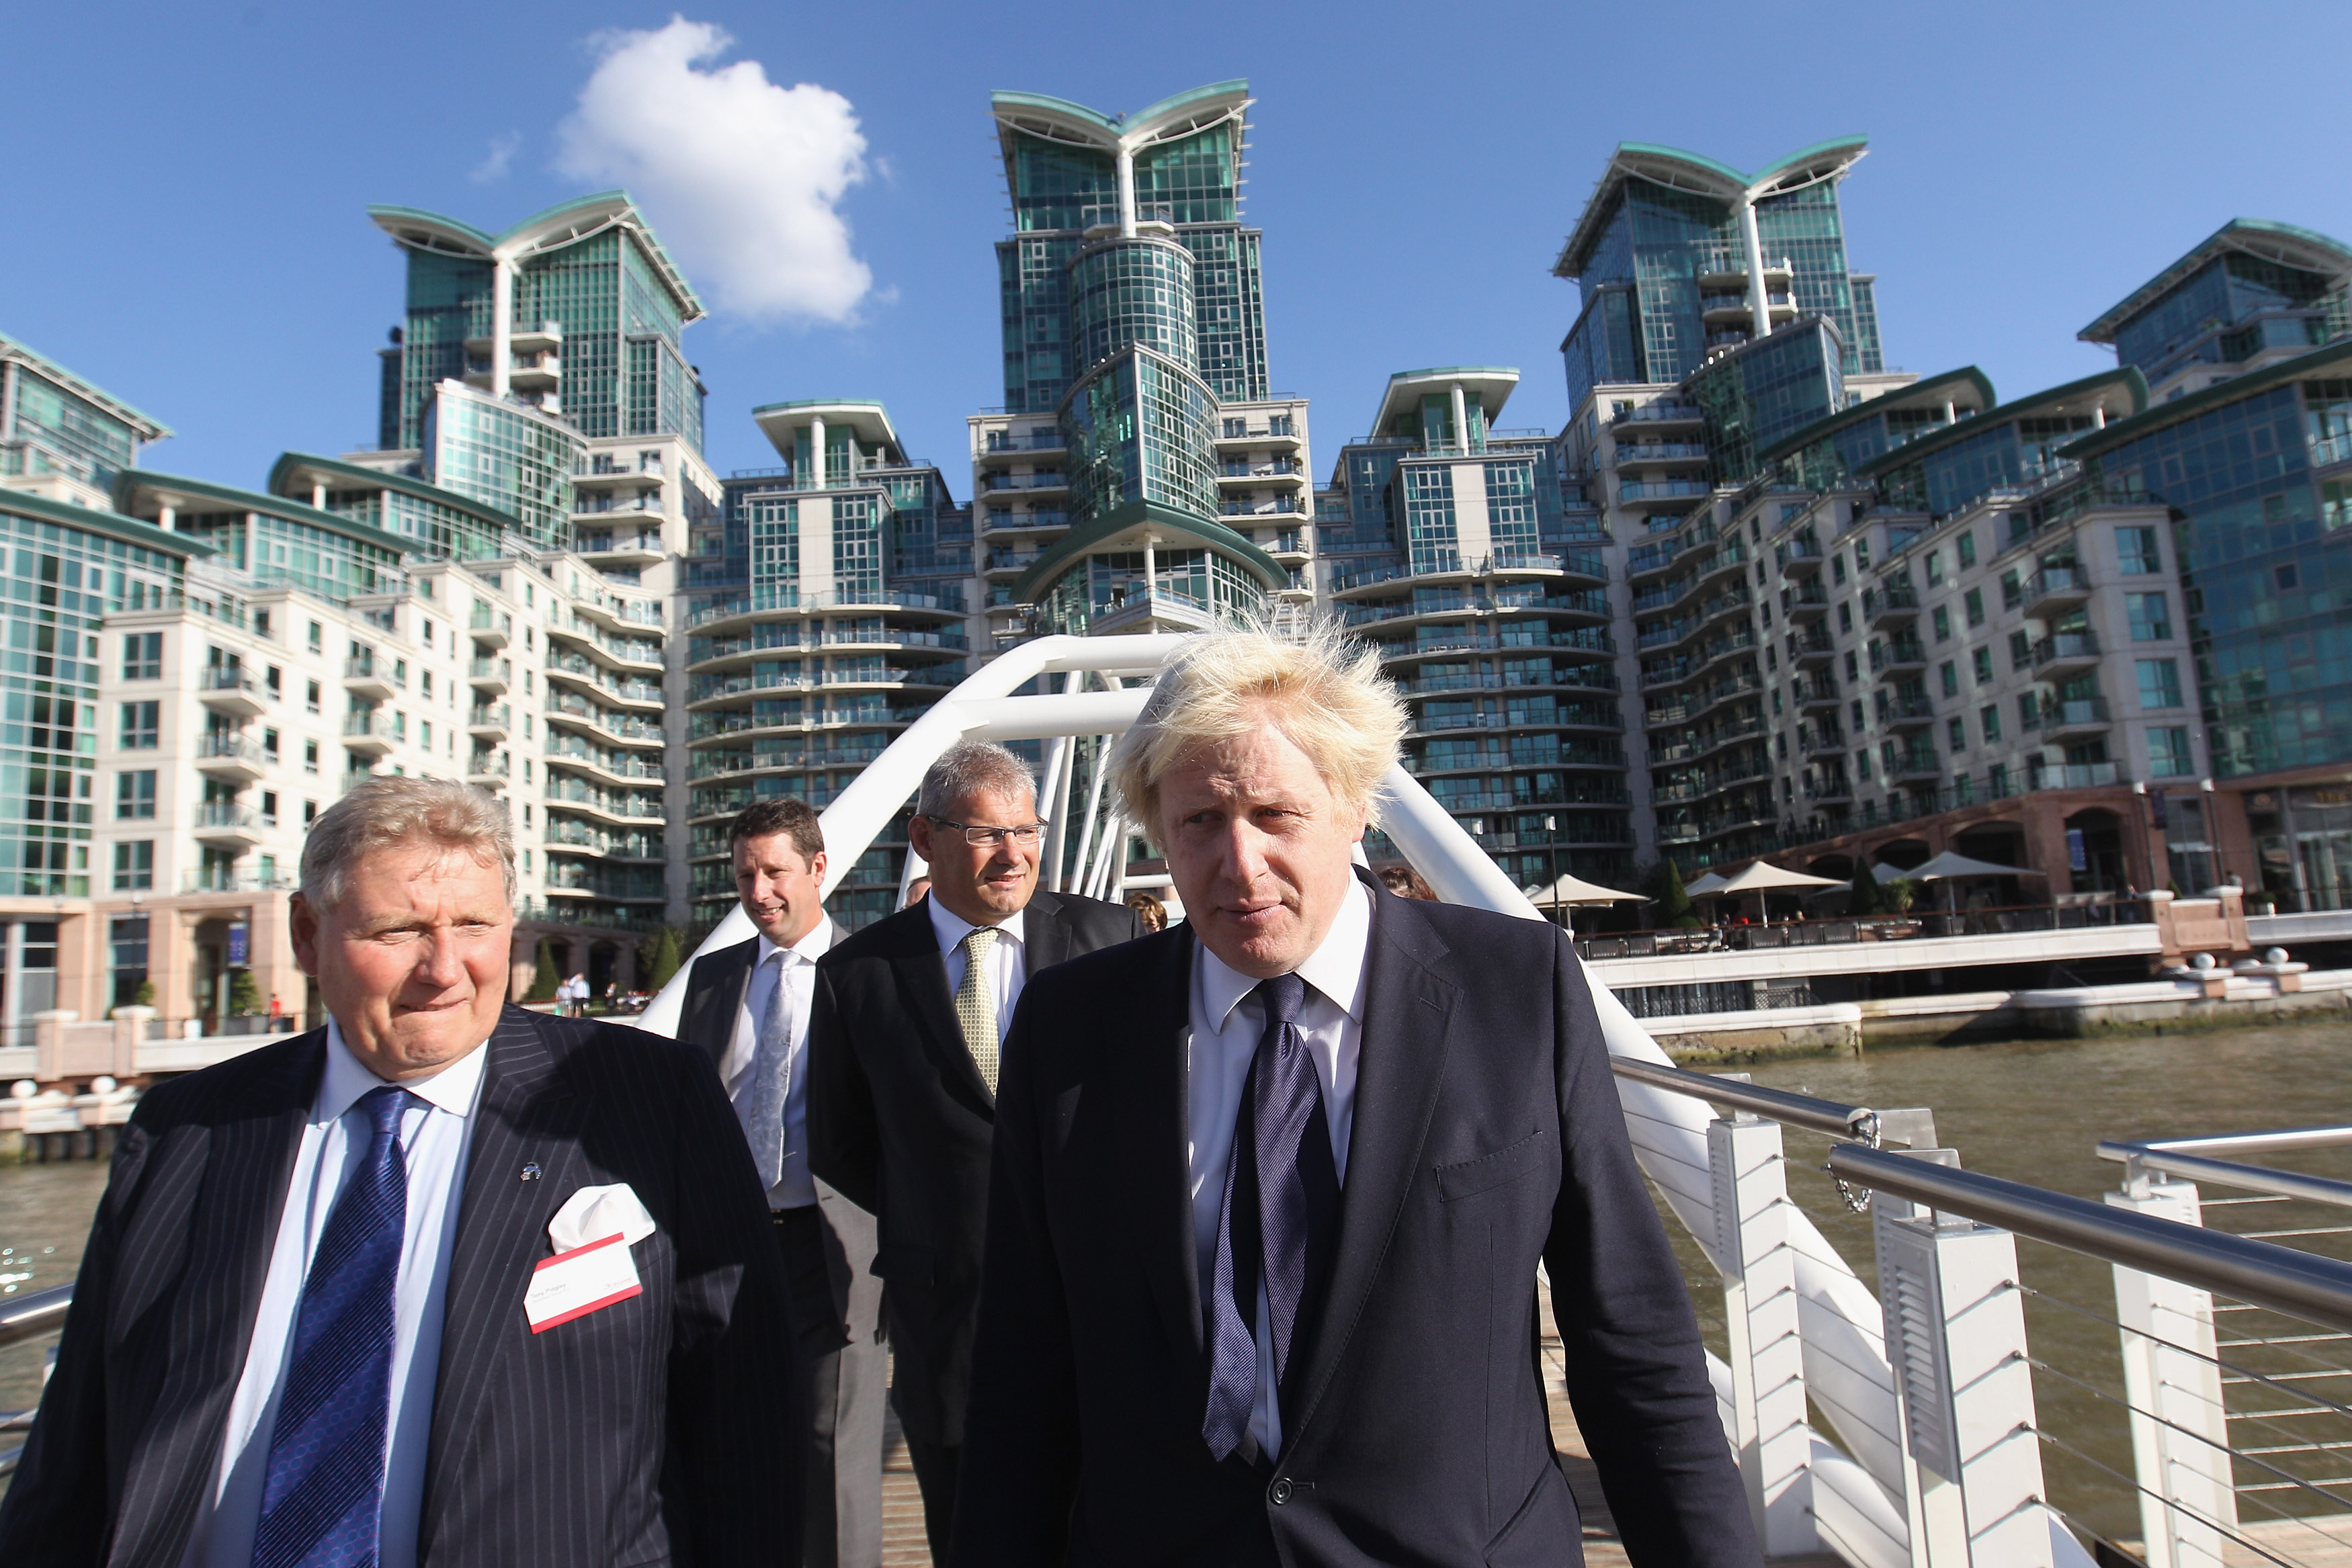 Housing chief executive Tony Berkeley with Boris Johnson in London in 2011